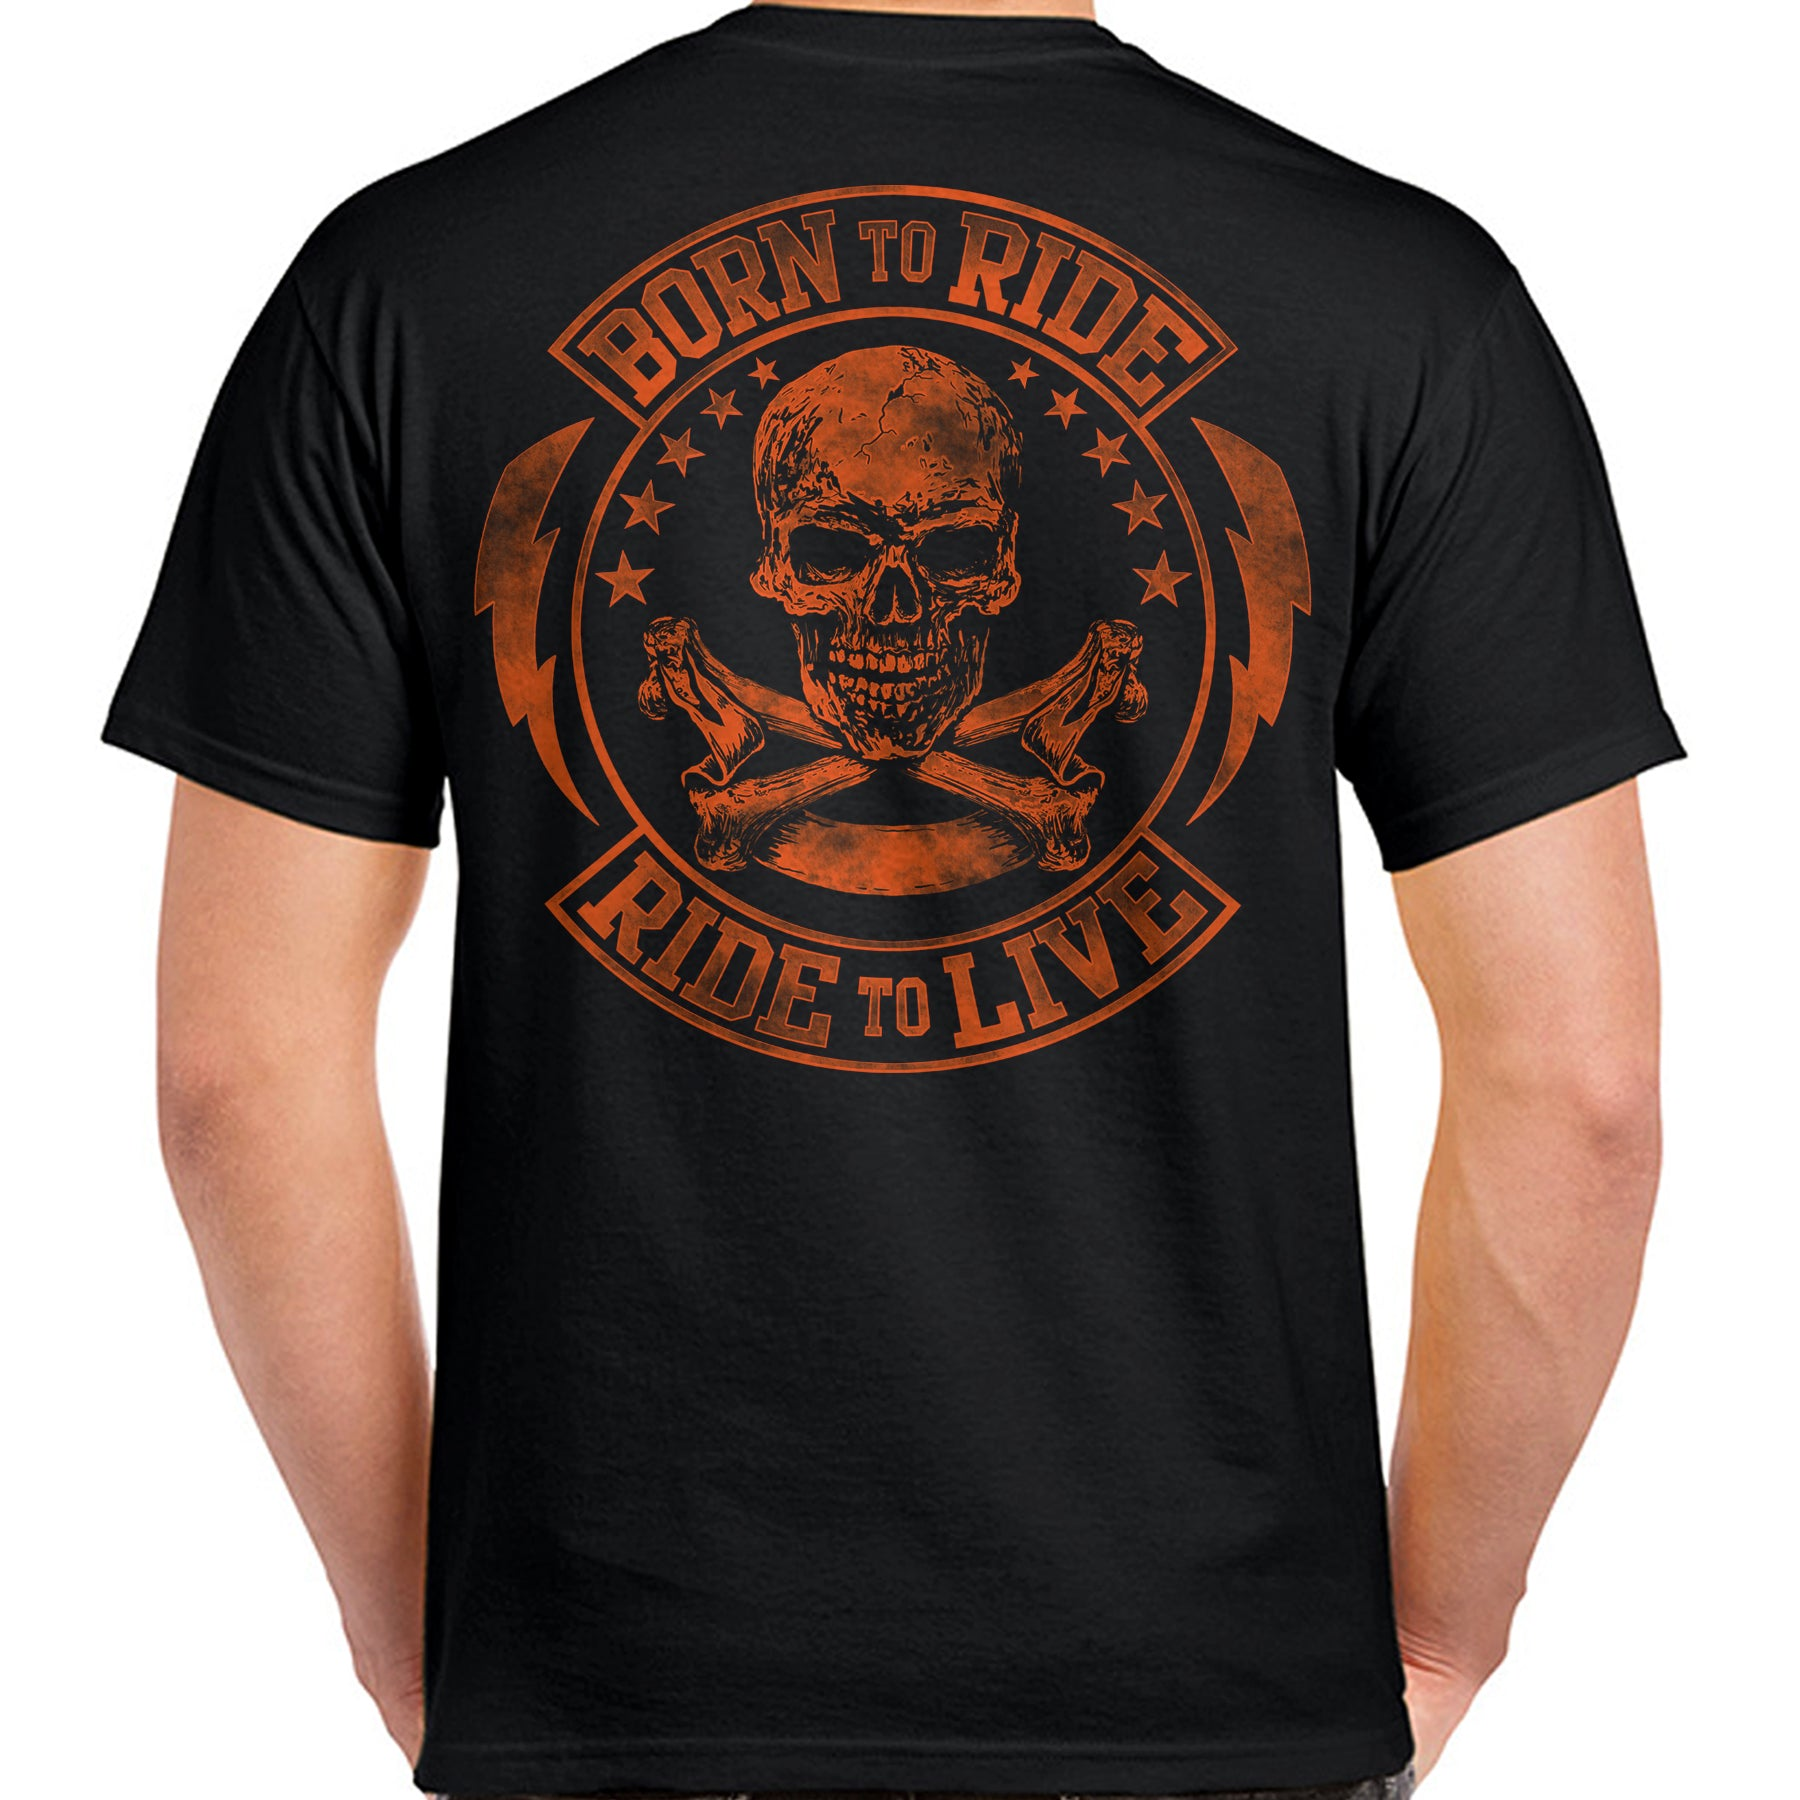 4d3cd9f1 Born to Ride/Ride to Live T-Shirt – Biker Life Clothing